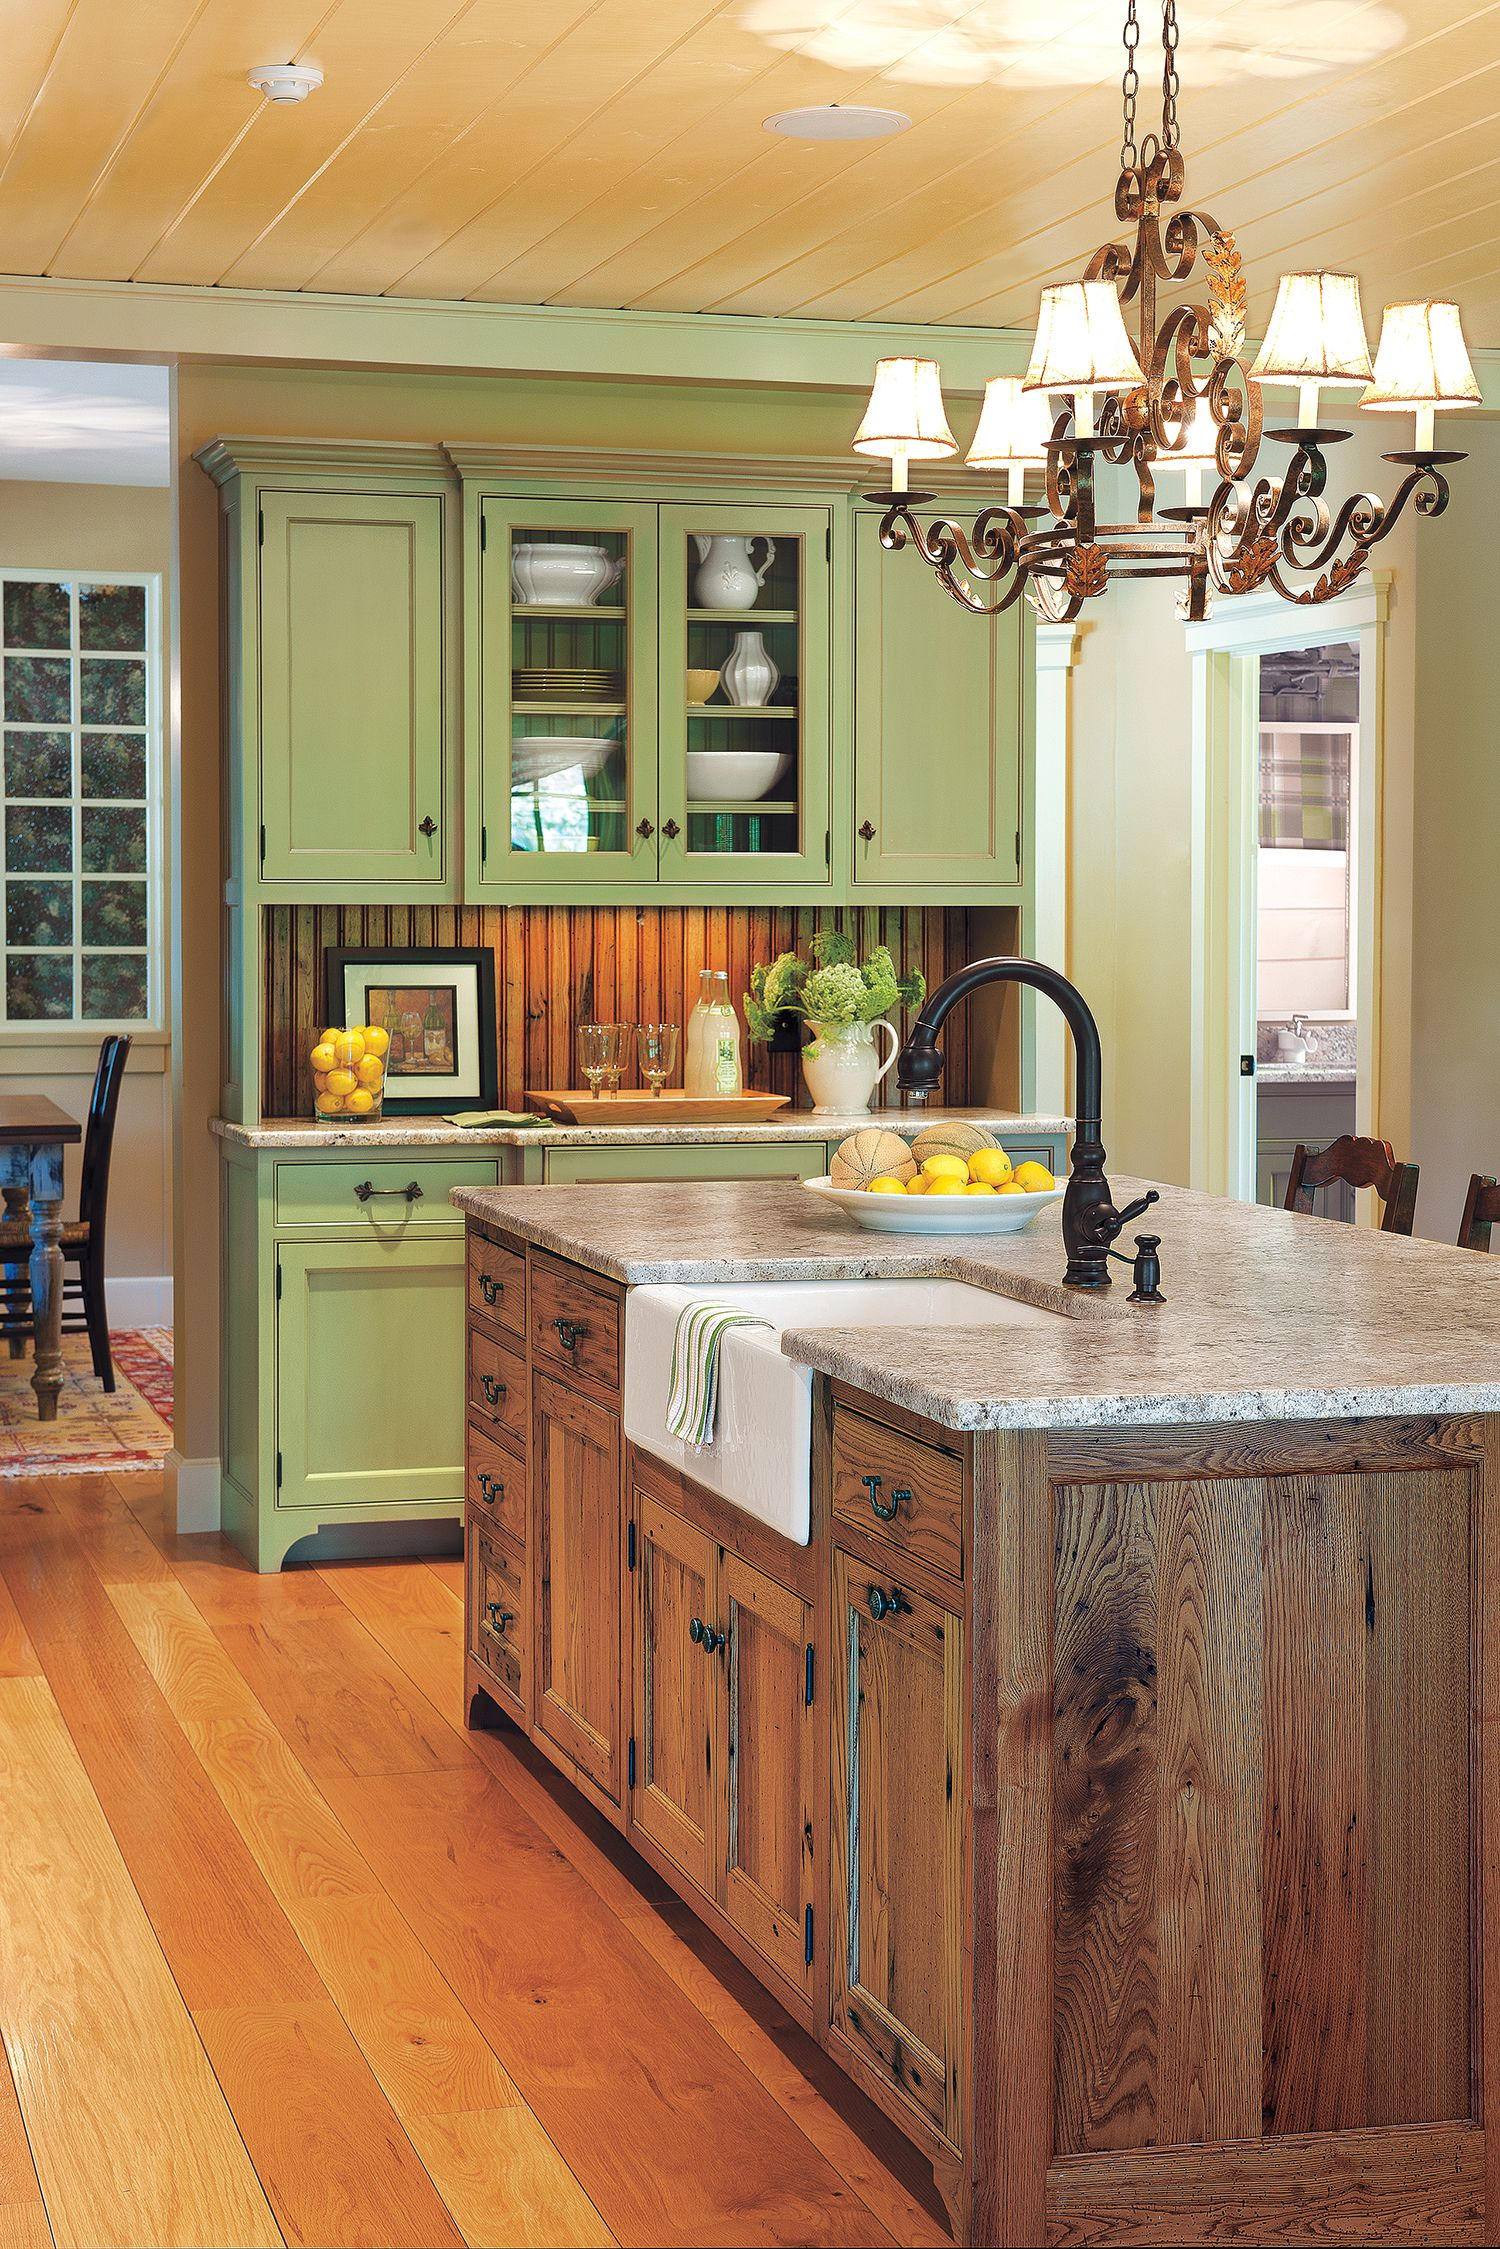 All About Kitchen Islands Rustic Country Kitchens Kitchen Island With Sink French Country Kitchens